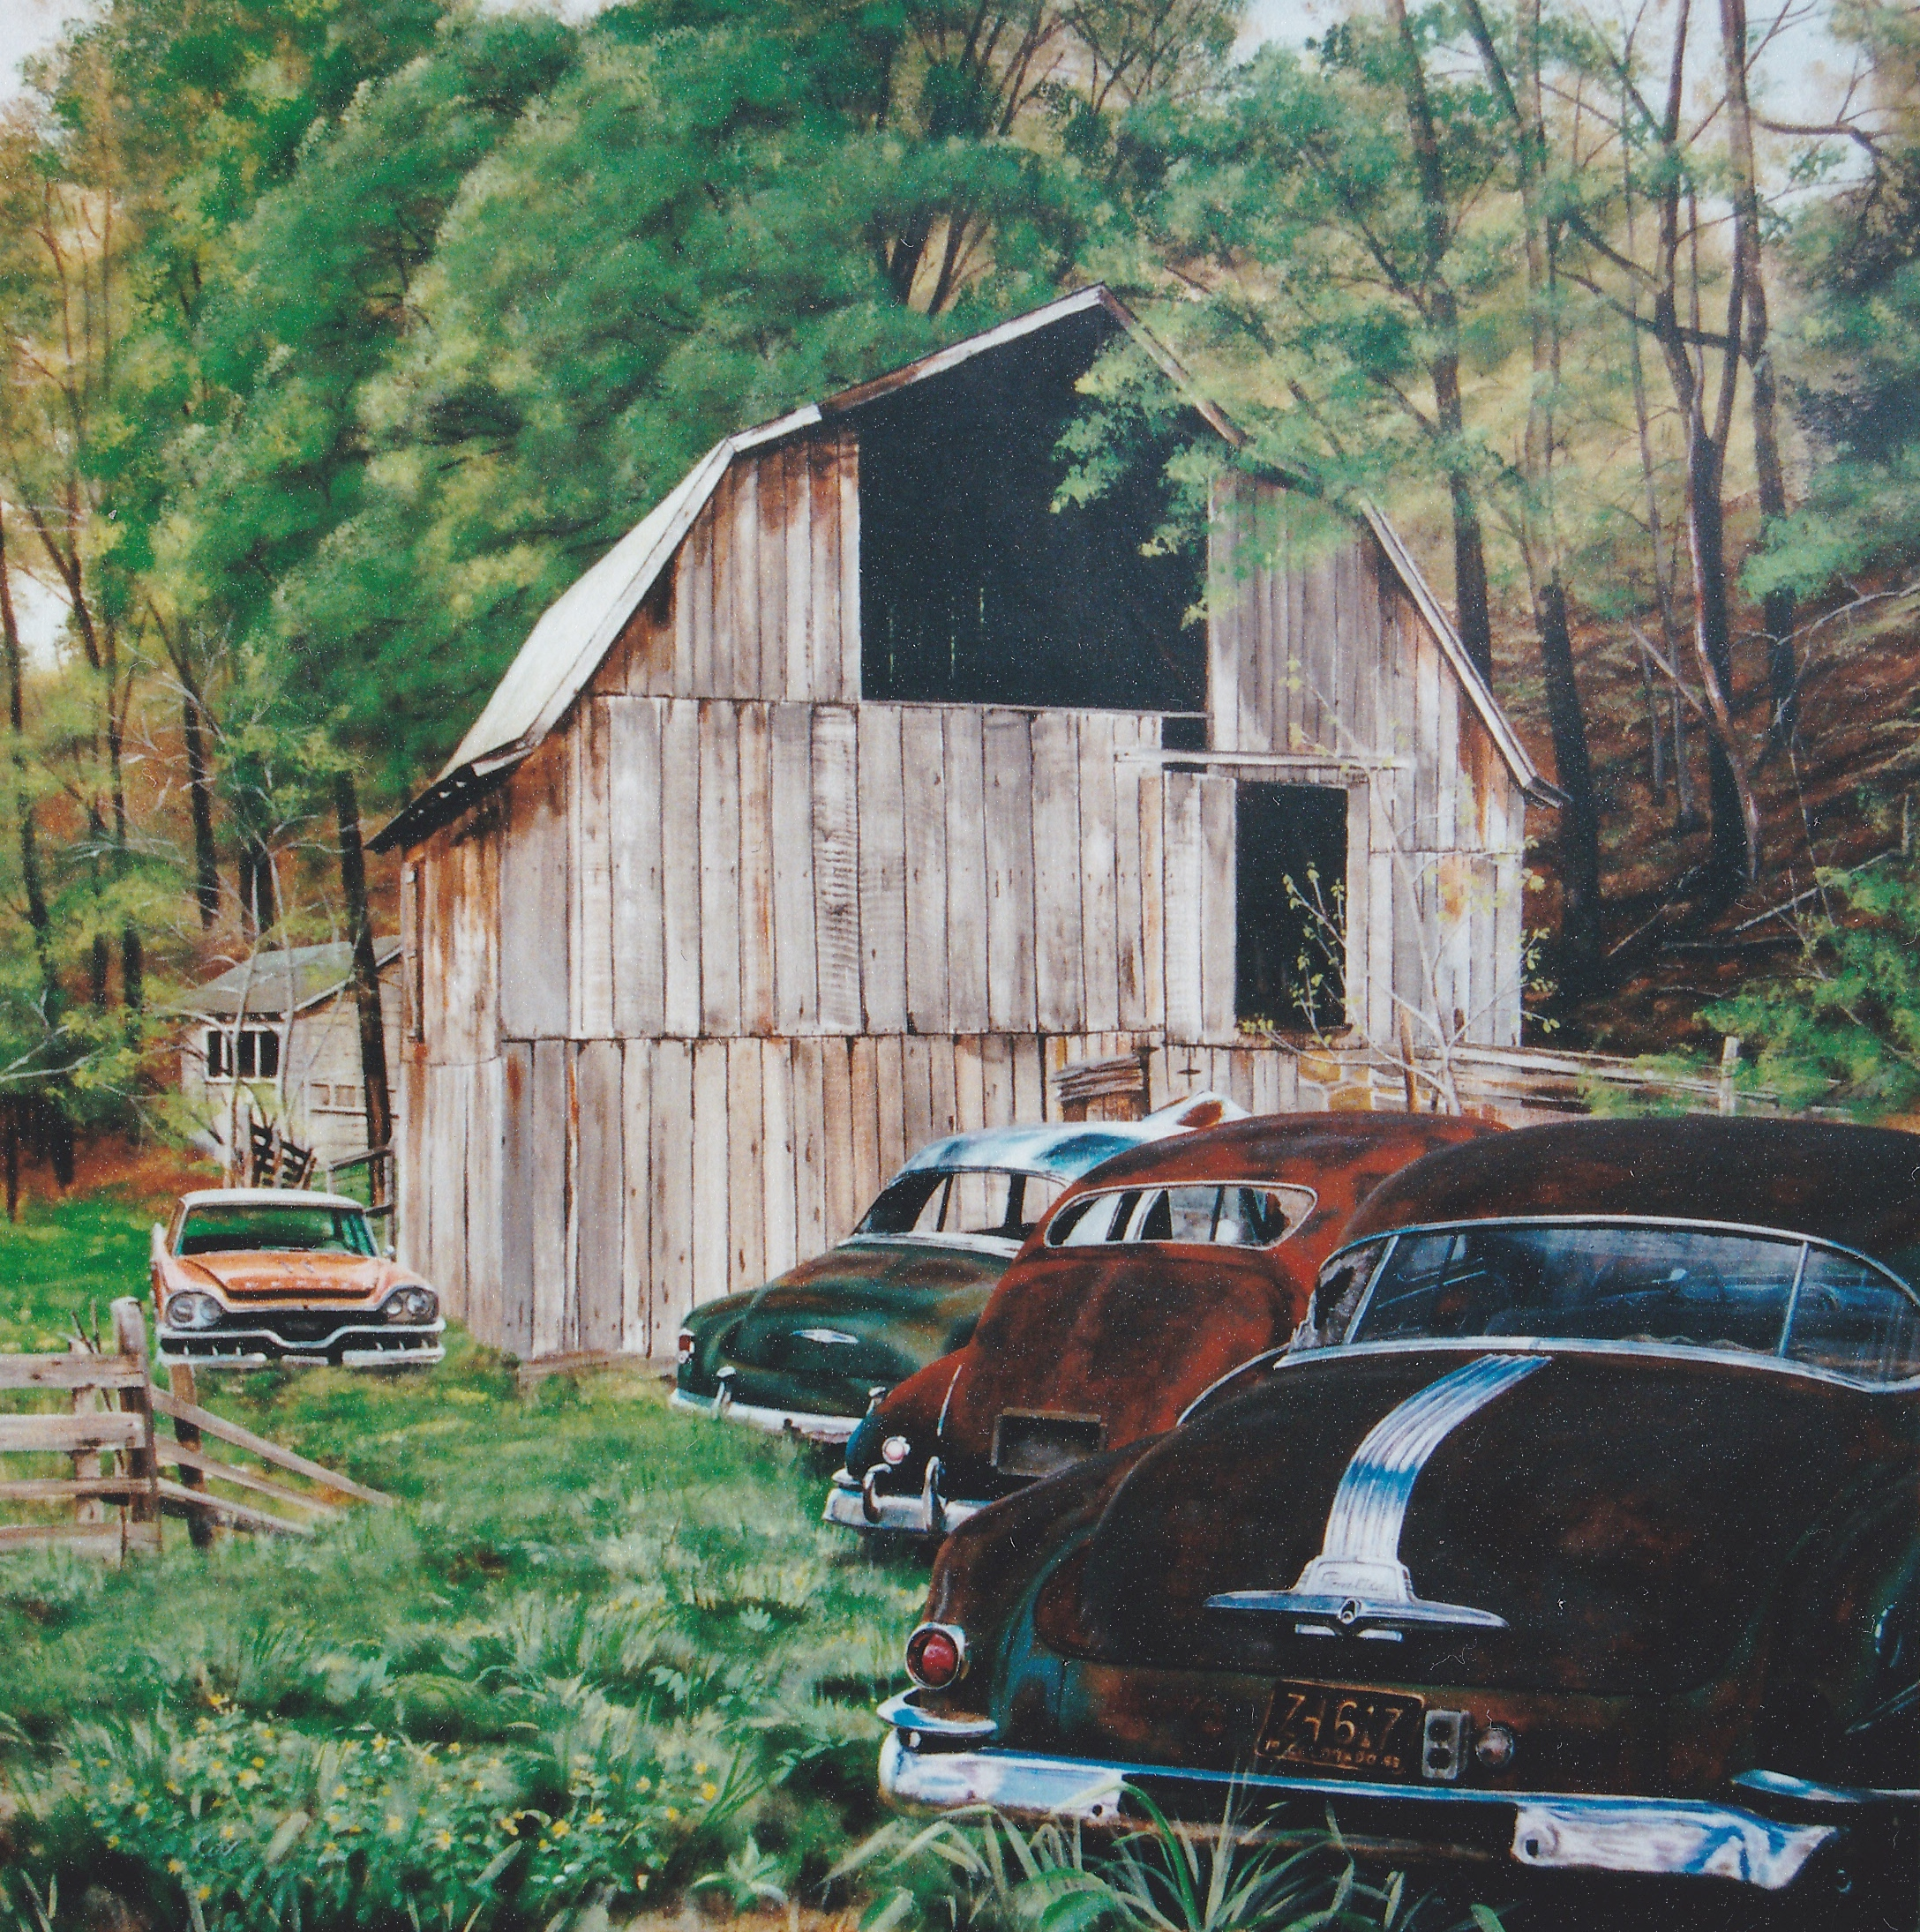 Barn and vintage cars painting